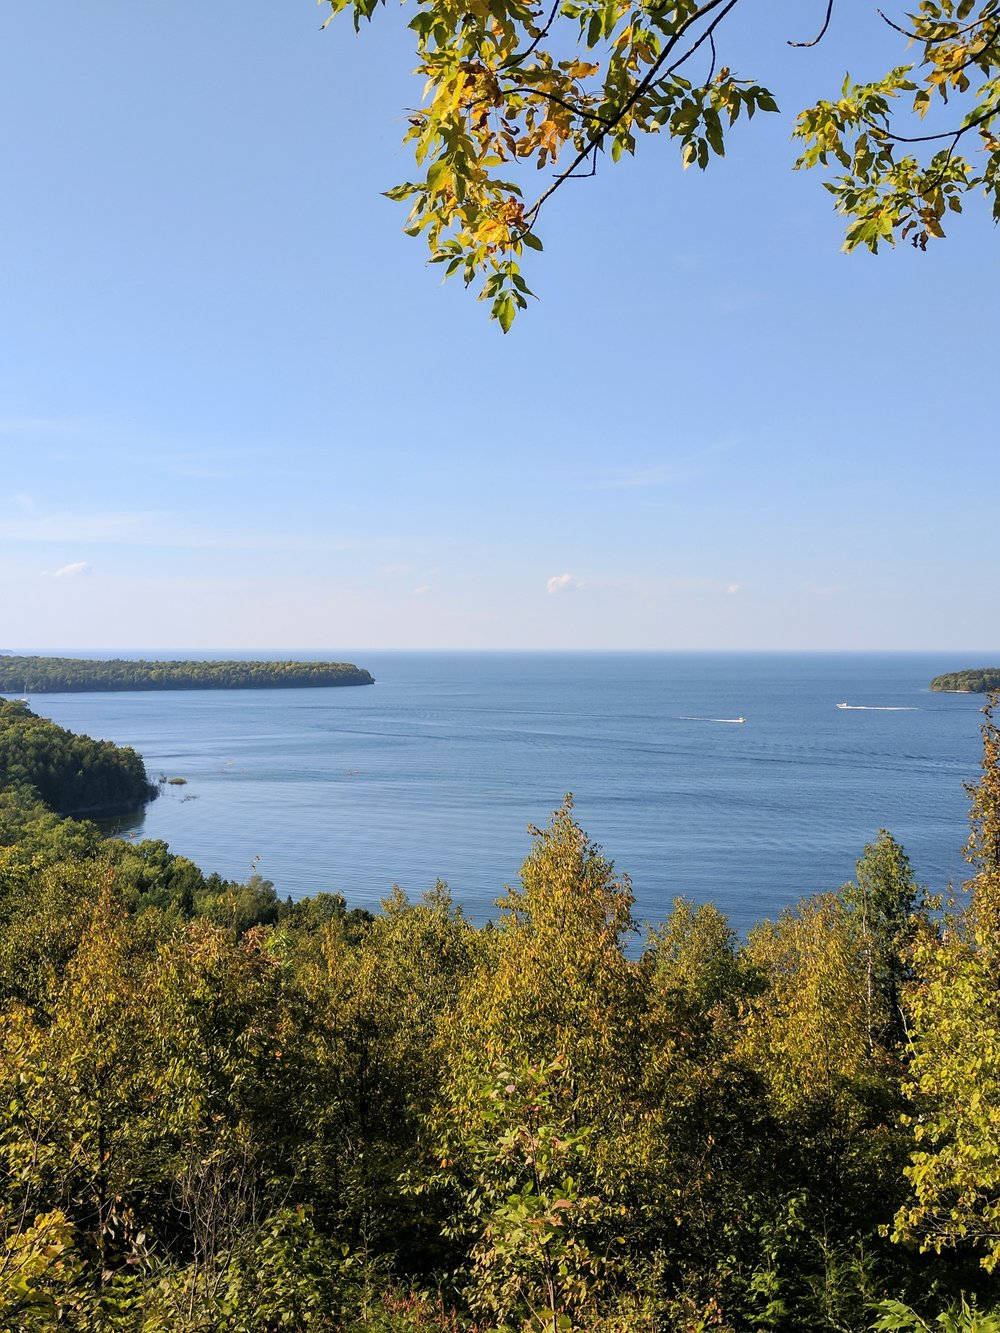 peninsula state park overlook